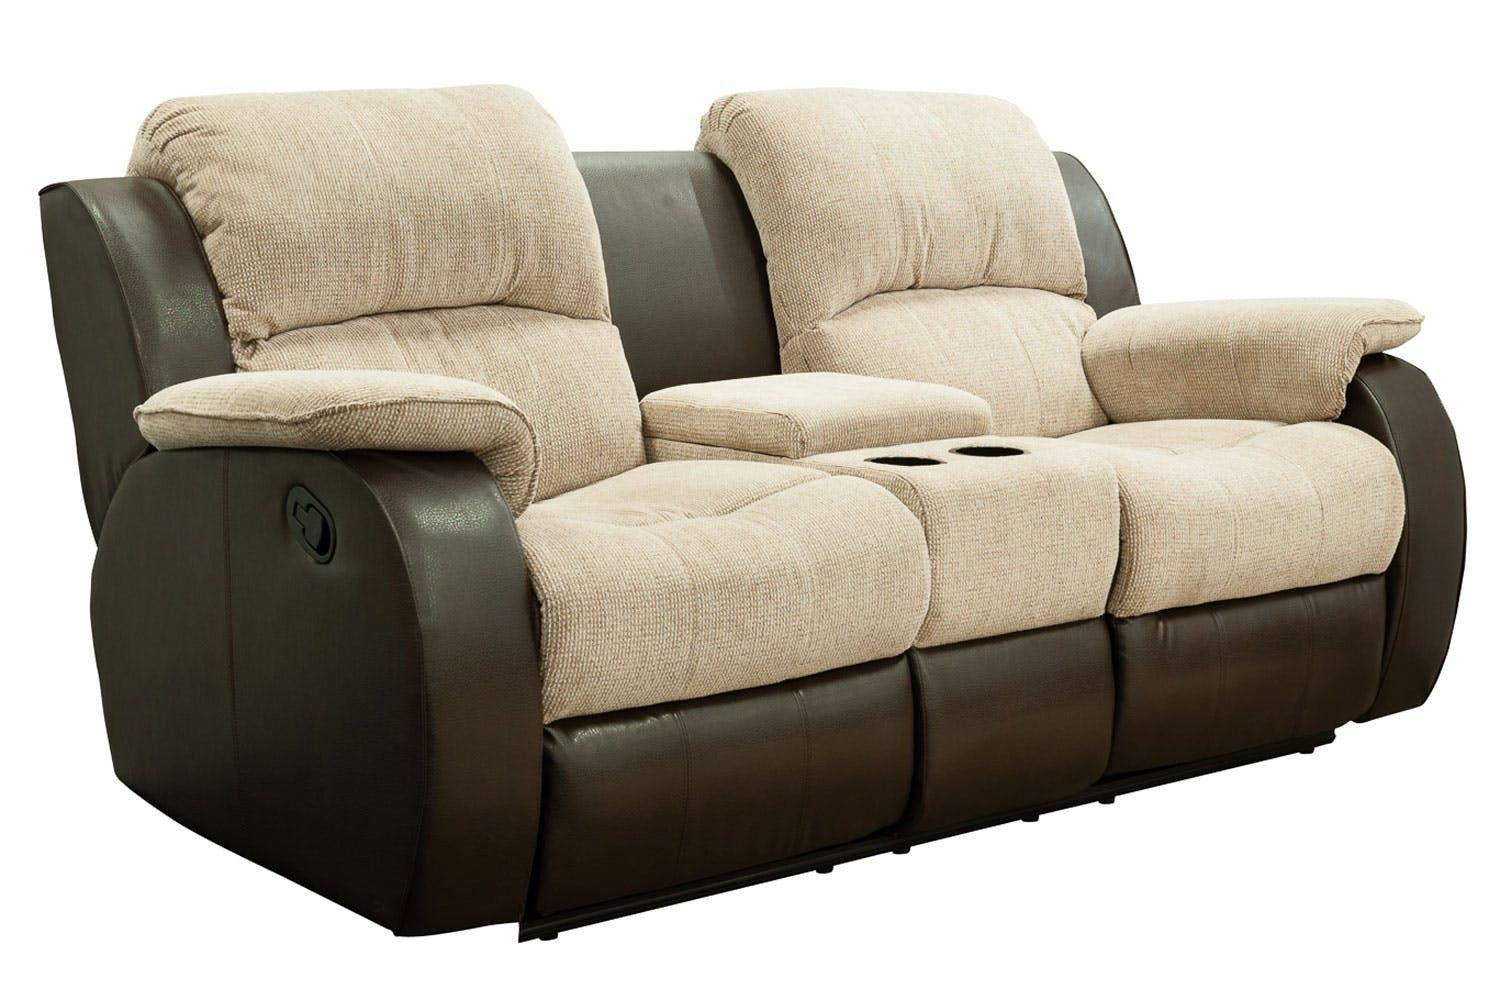 Sofas Center : Magnificent Recliningfa With Console Images Concept With Regard To Sofas With Console (View 16 of 20)